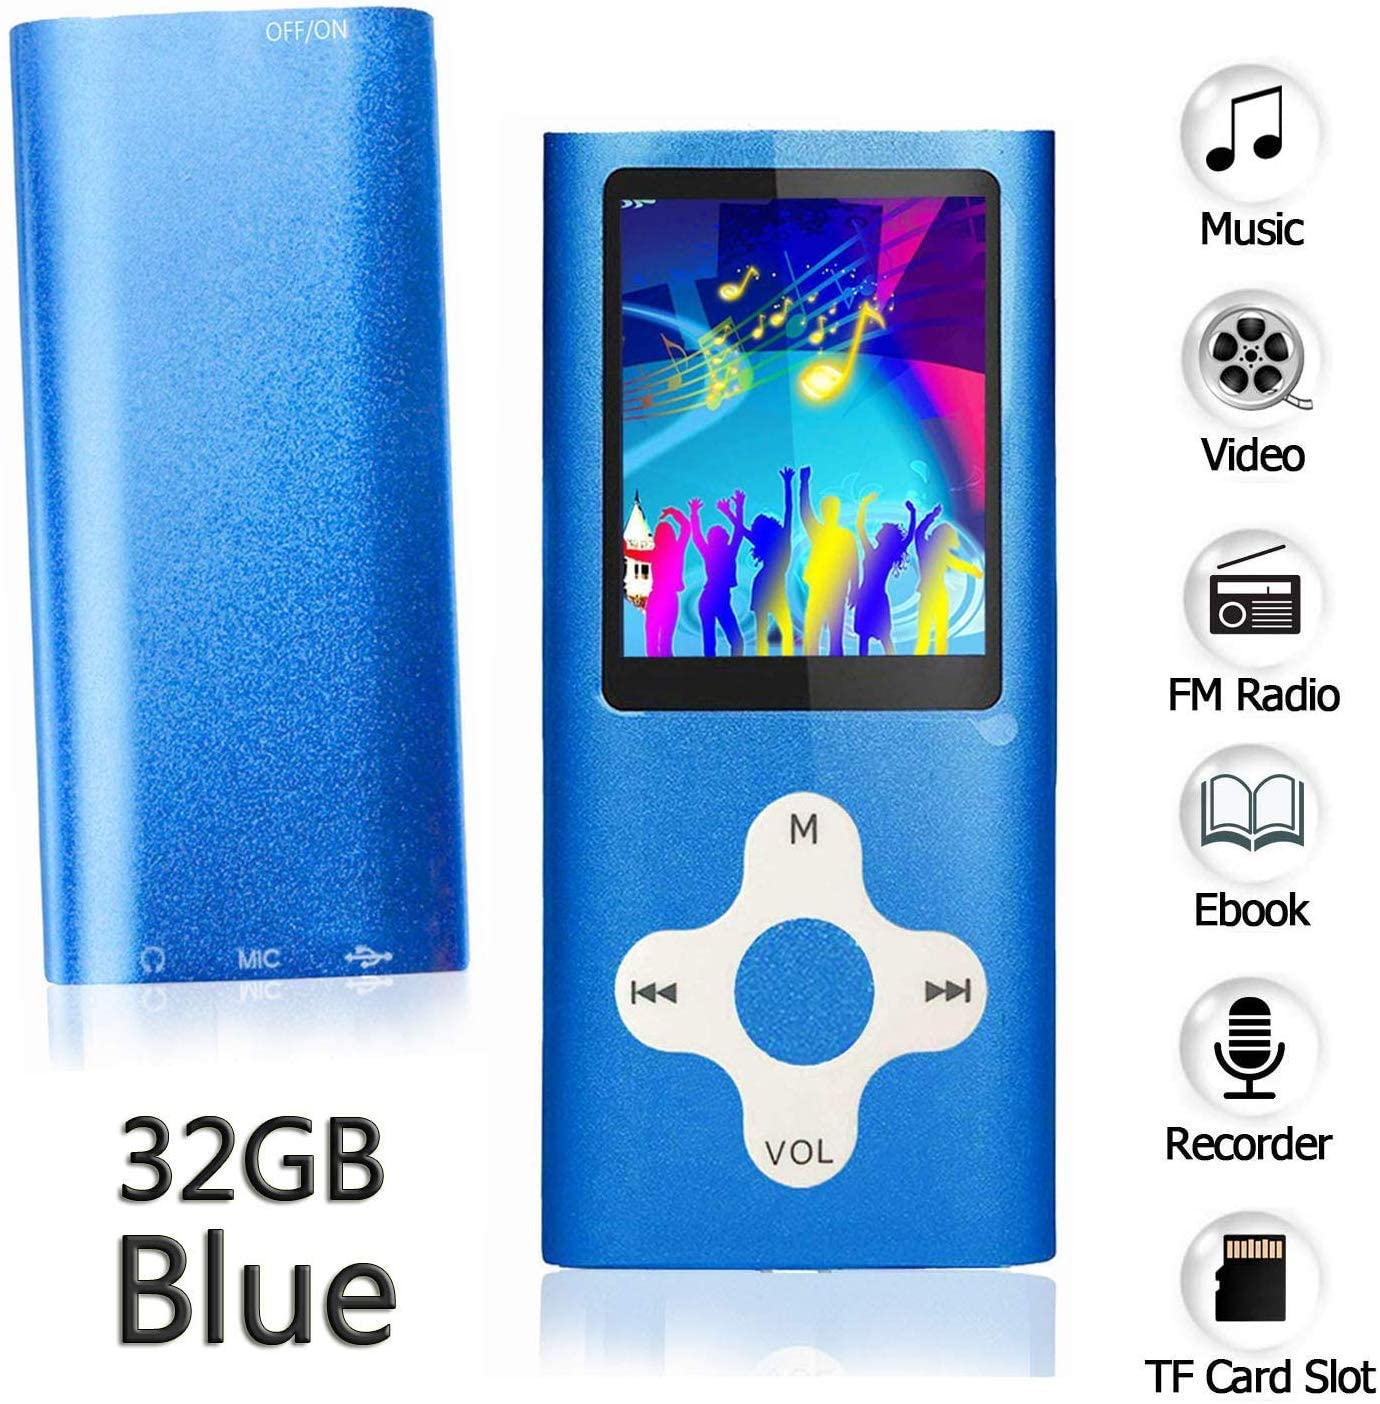 Ploveyy MP3 Player MP4 Player Including a 32GB Micro SD Card,extensible 64 GB,Mini USB Port 1.8 LCD, with Photo Viewer, E-Book Reader, Voice Recorder & FM Radio,Video/Media/Music Player (32GB-Blue)